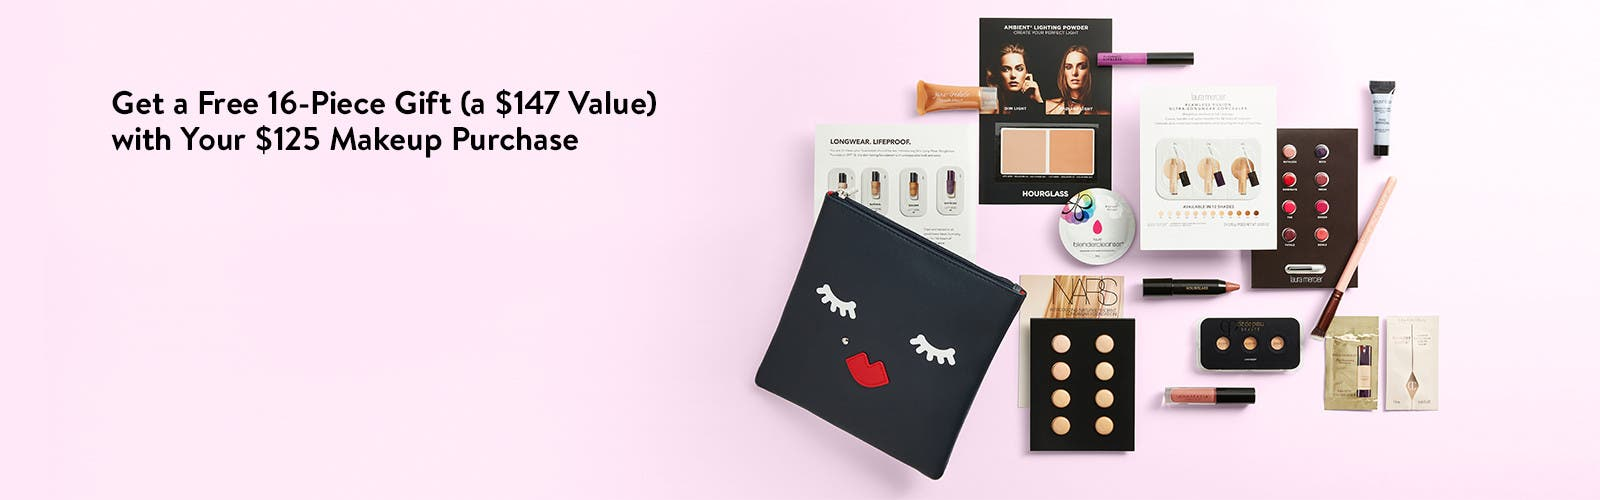 Get a free 16-piece gift with your $125 makeup purchase.